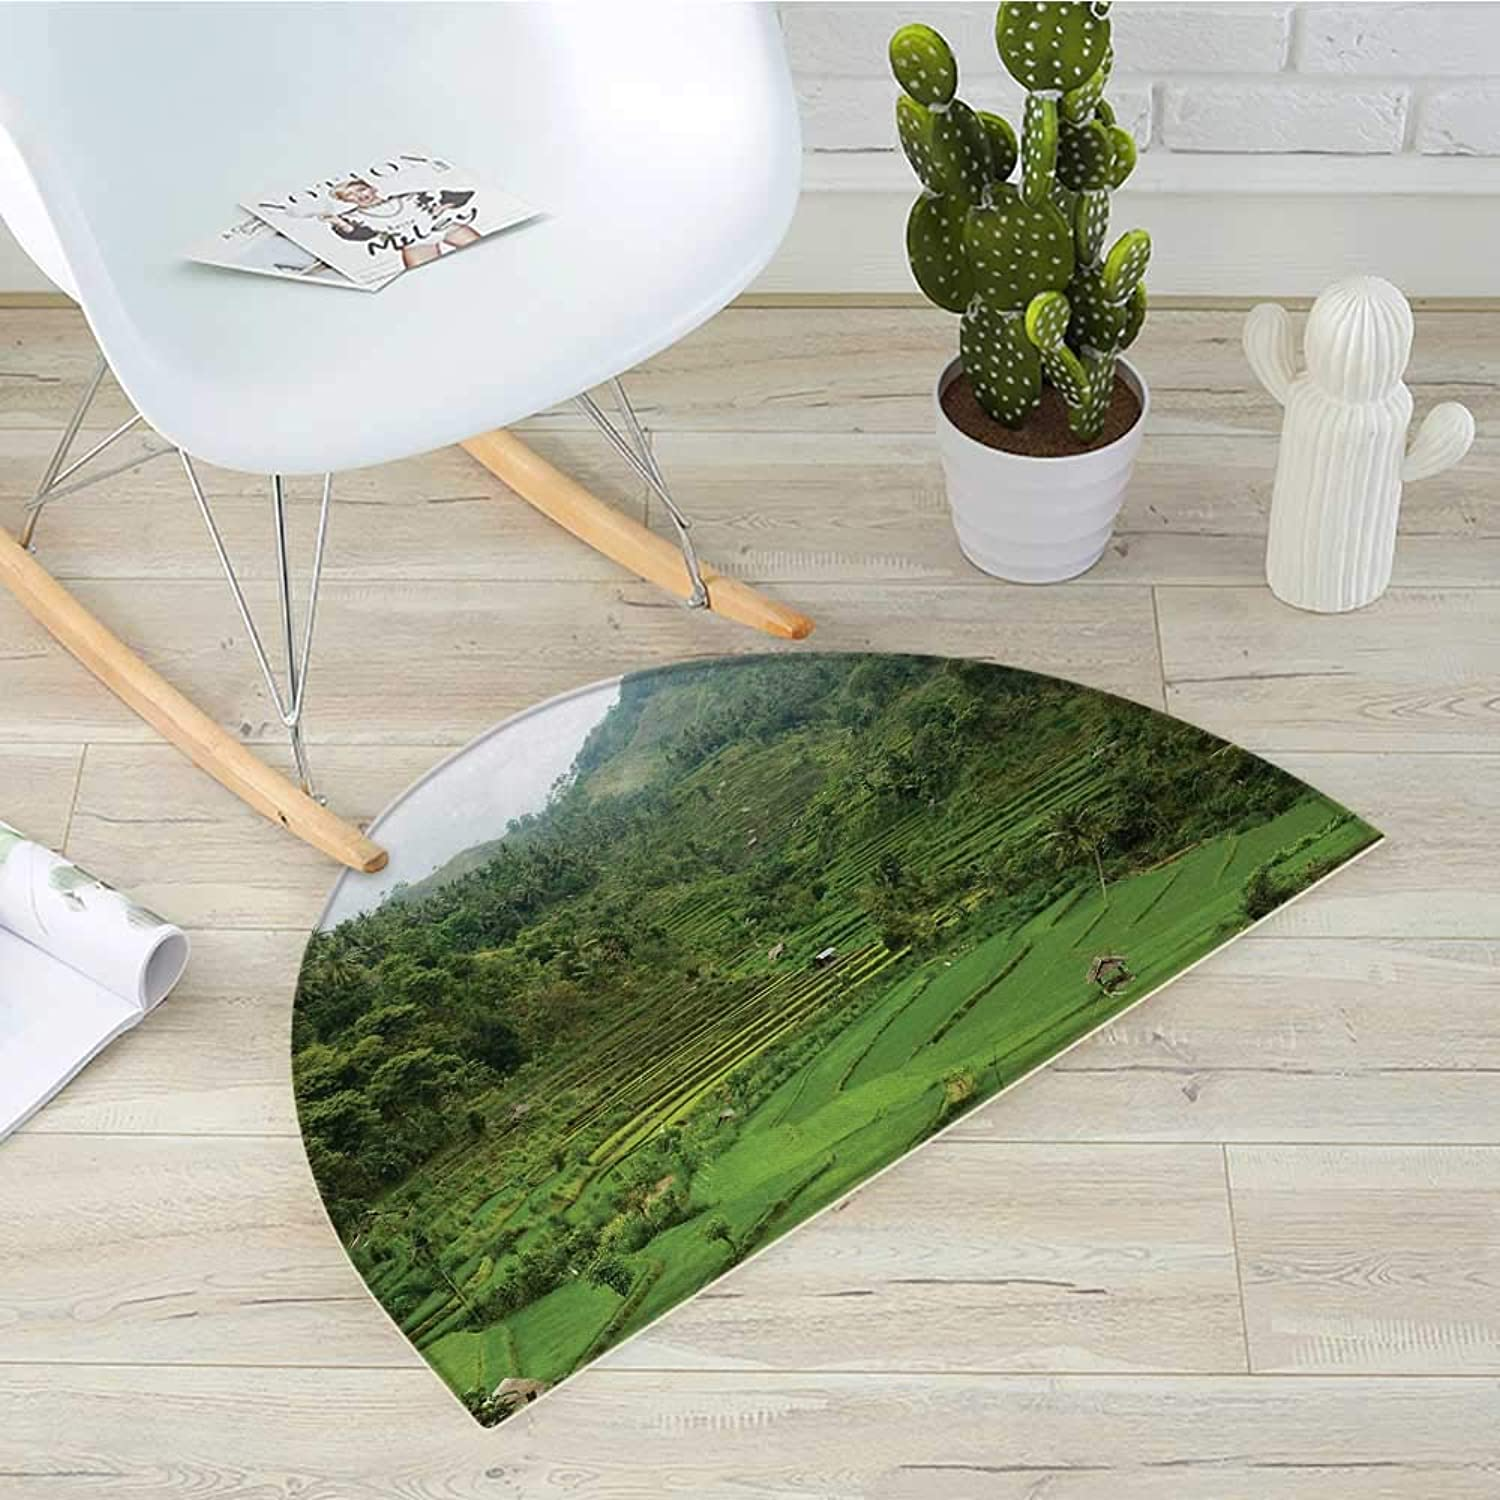 Balinese Semicircular CushionTerraced Rice Paddies in Hillside Tropical Valley Asian Farming Life Agriculture Theme Entry Door Mat H 39.3  xD 59  Green